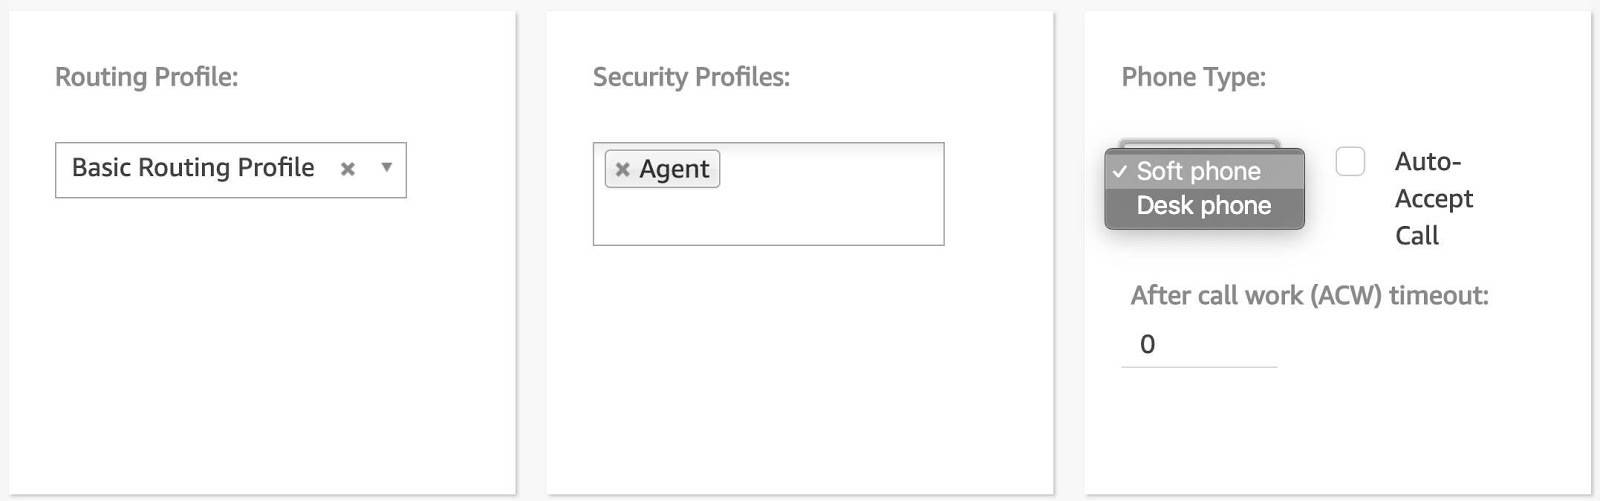 user profile with Basic Routing Profile, Agent, and Soft phone selected